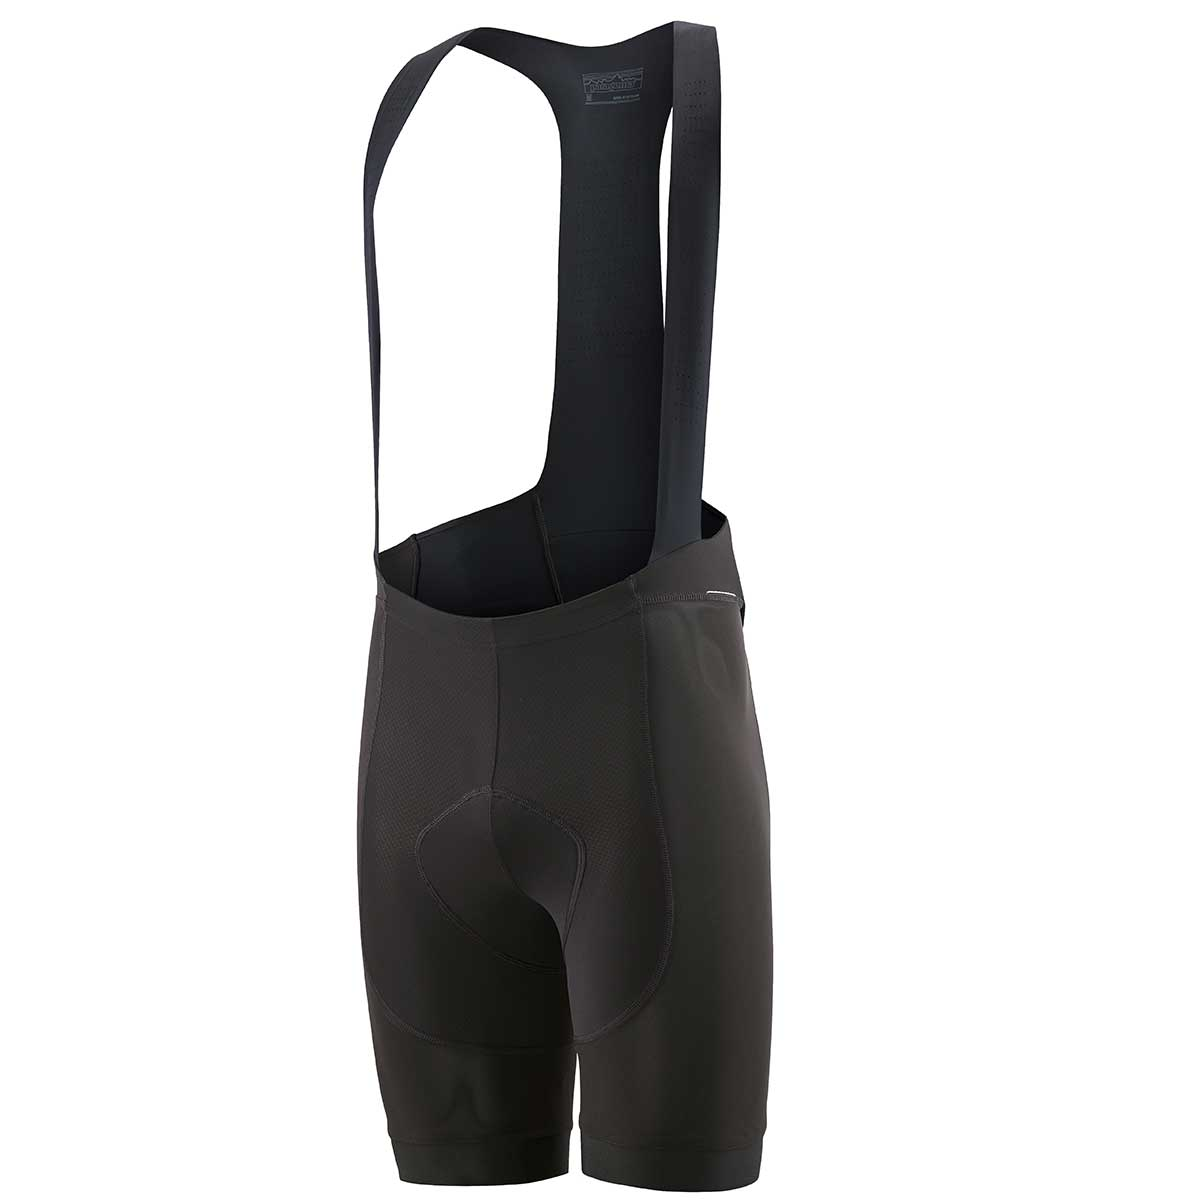 Patagonia men's Dirt Roamer Liner Bib Short in Black front view